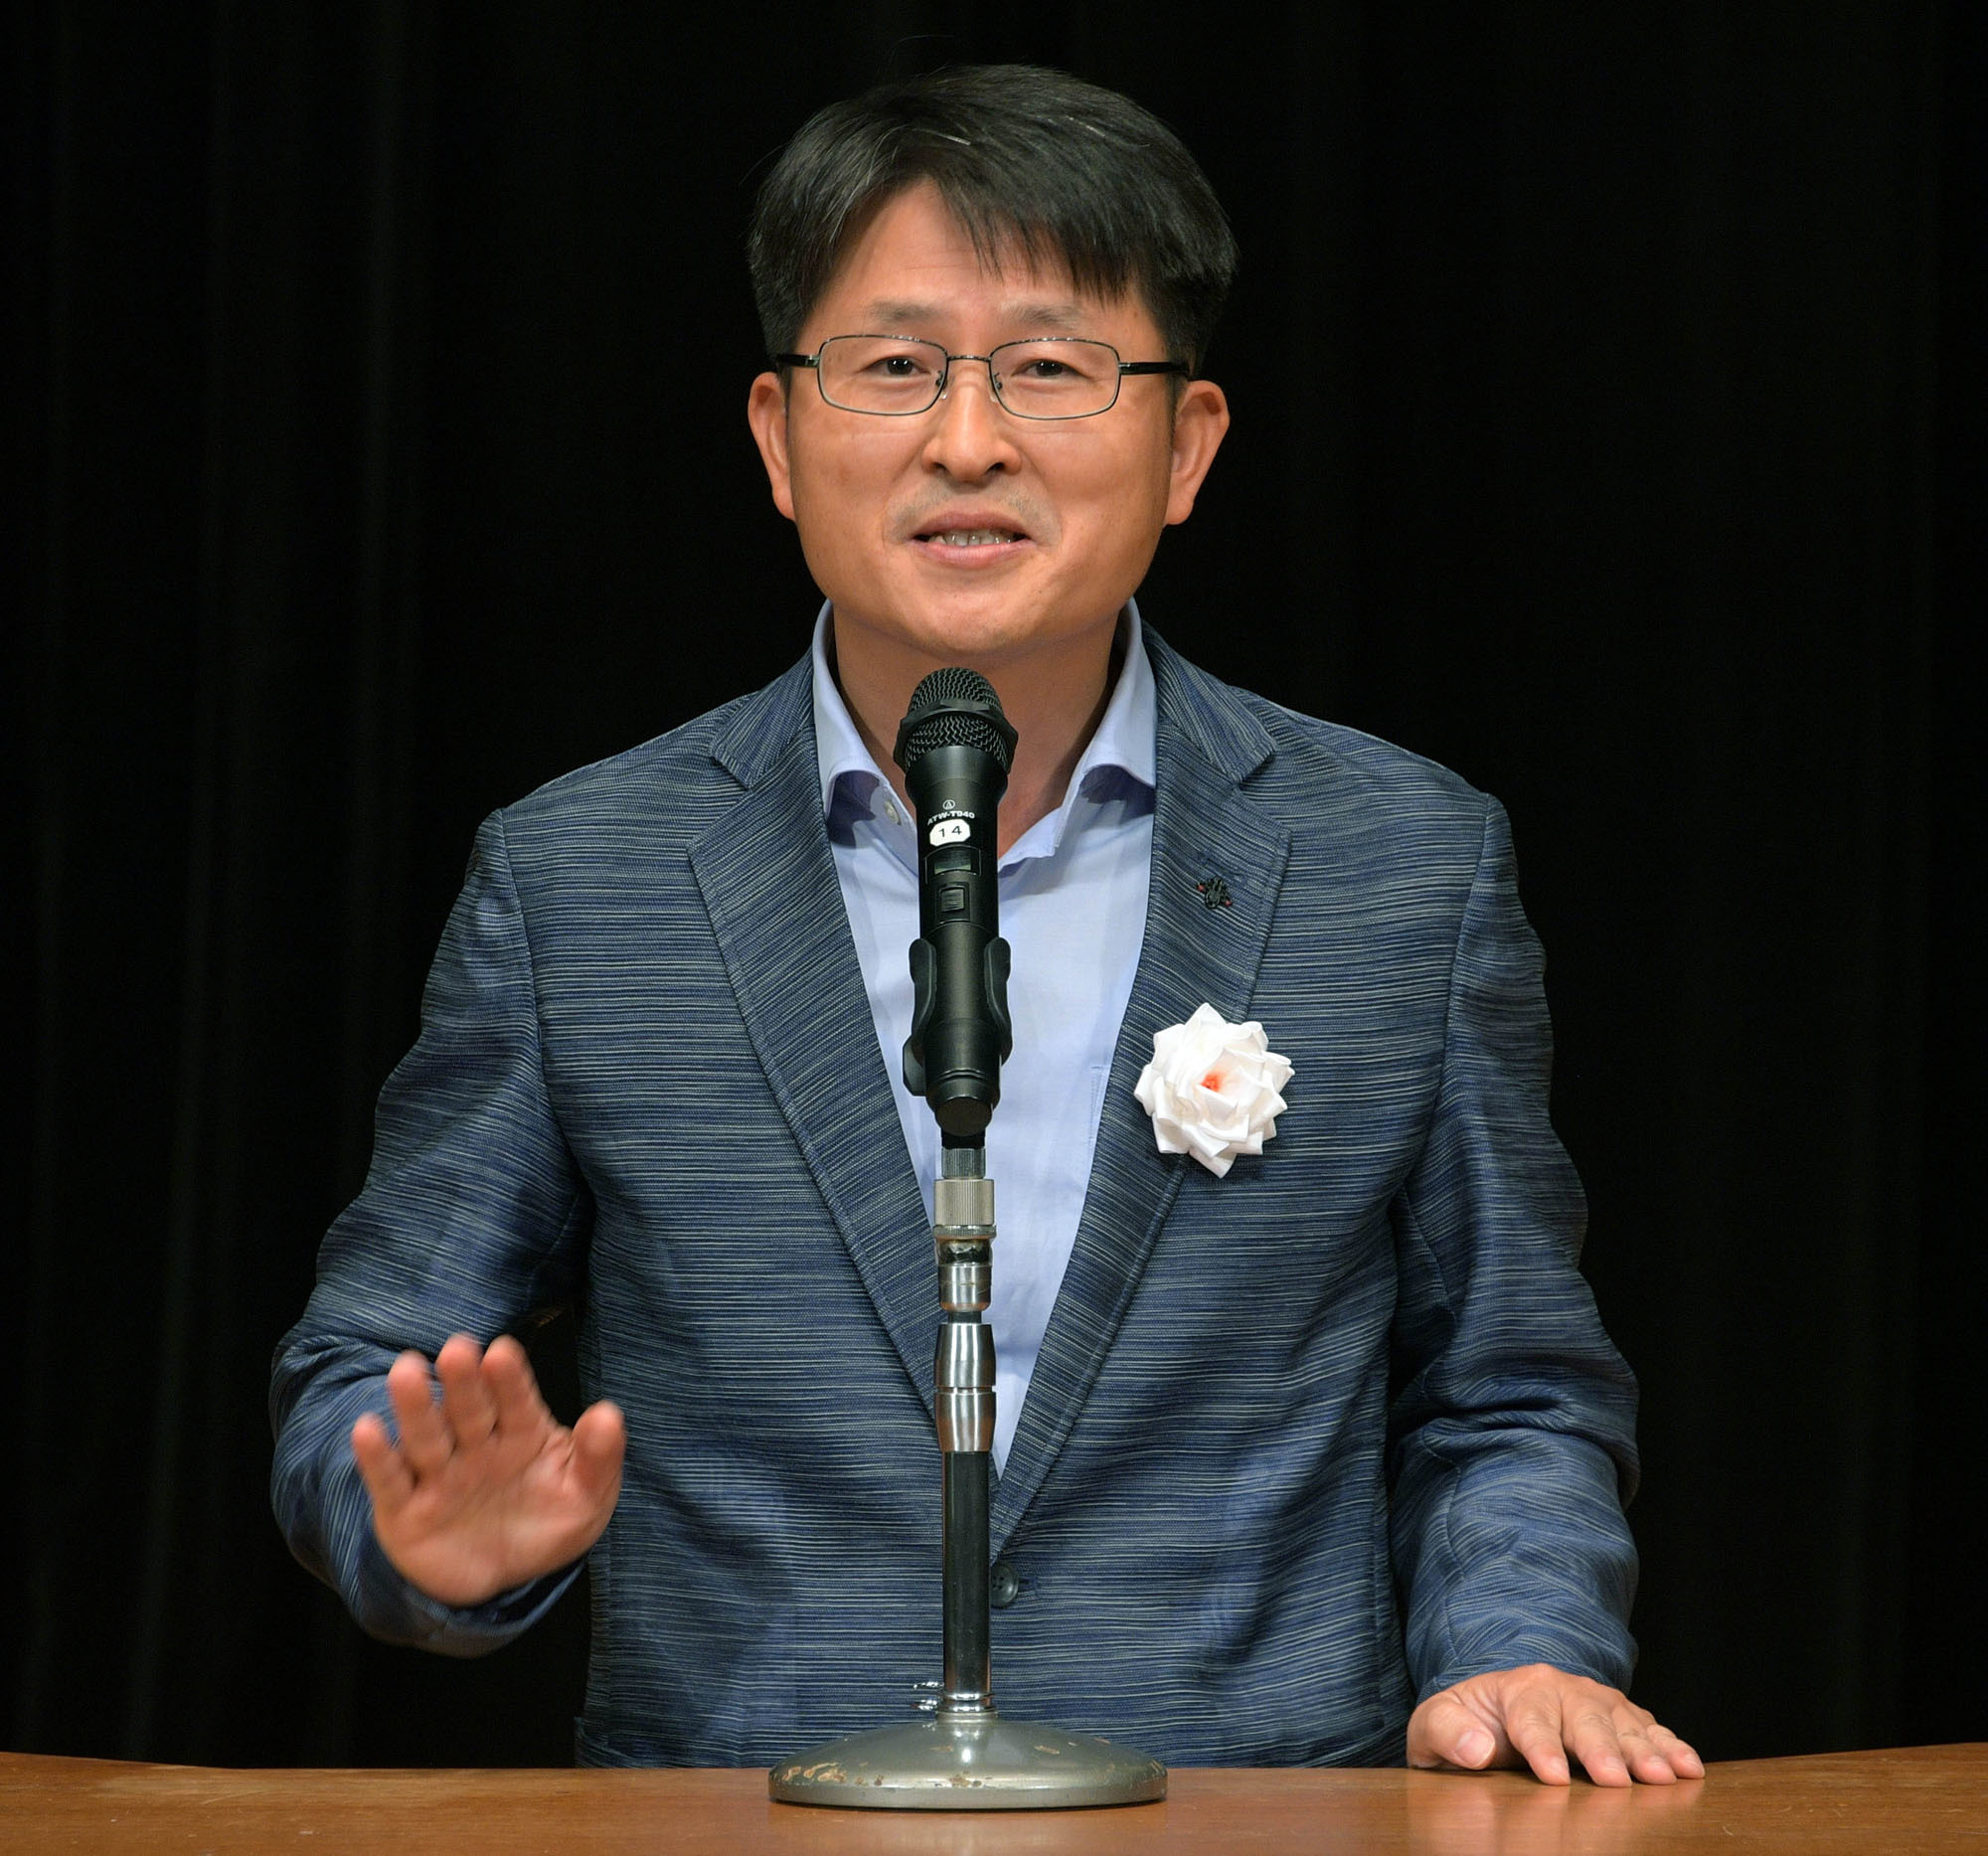 Byungsik Jung of South Korea, winner of the Education Minister's Prize, deliver speeches at the competition. |   YOSHIAKI MIURA